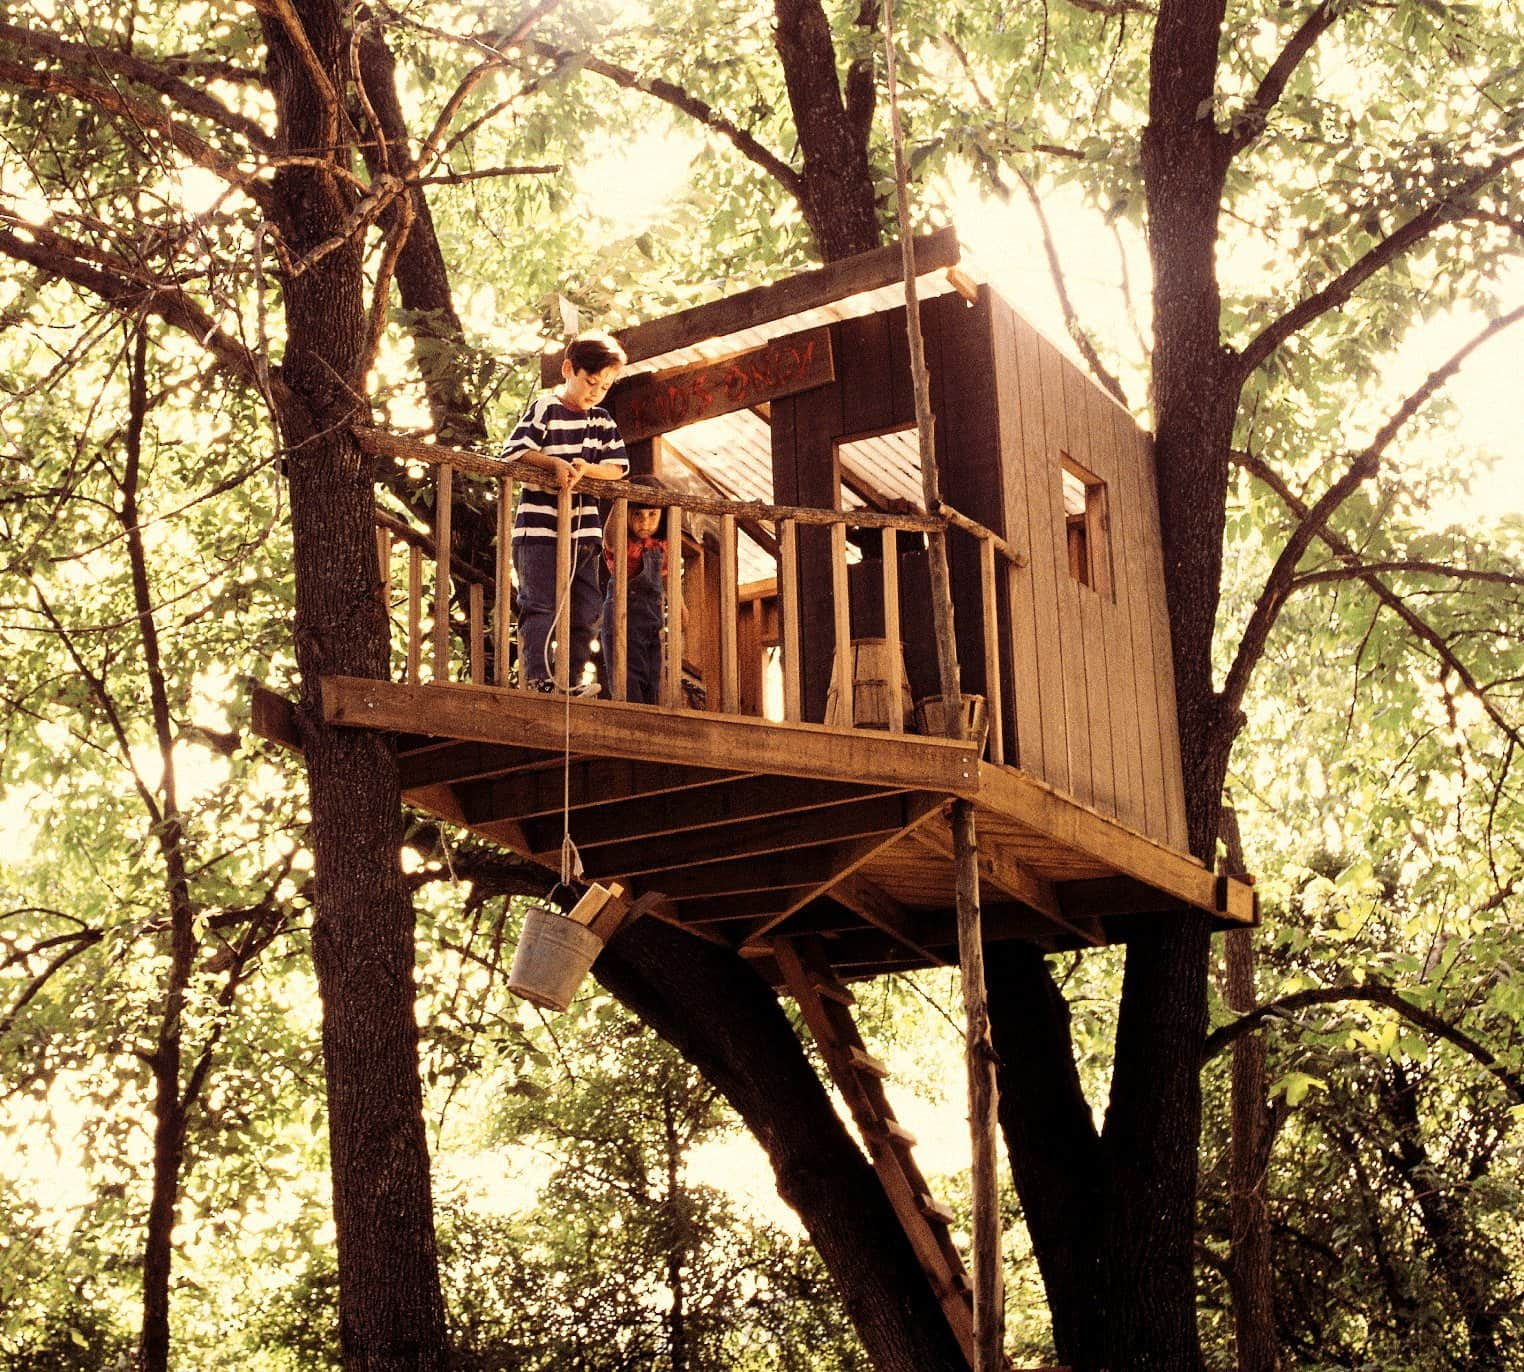 An old tree house up high